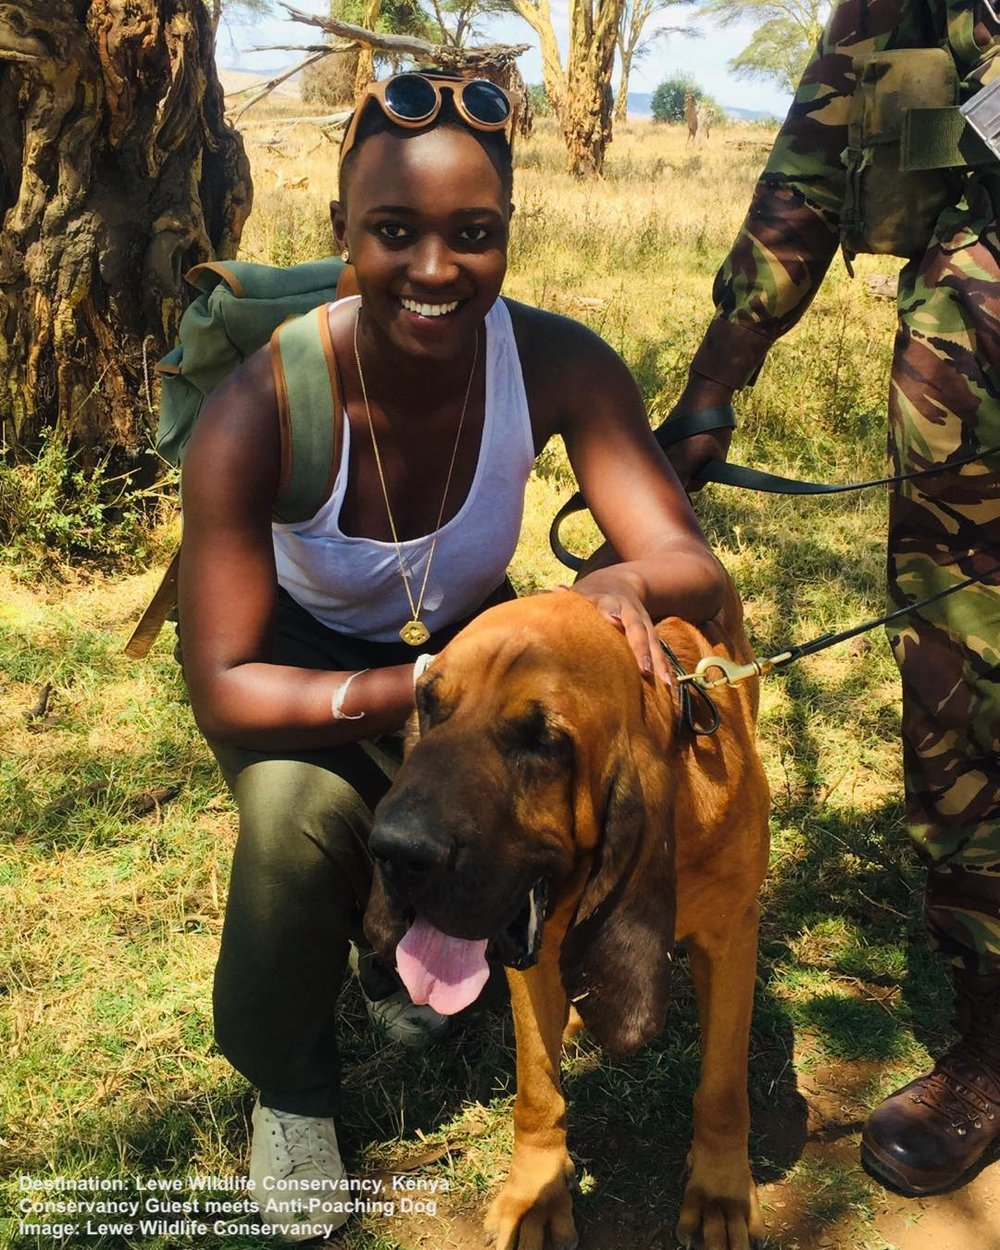 A GUEST MEETS ONE OF LEWA'S ANTI-POACHING TRACKER DOGS IMAGE:  LEWA CONSERVANCY, FACEBOOK